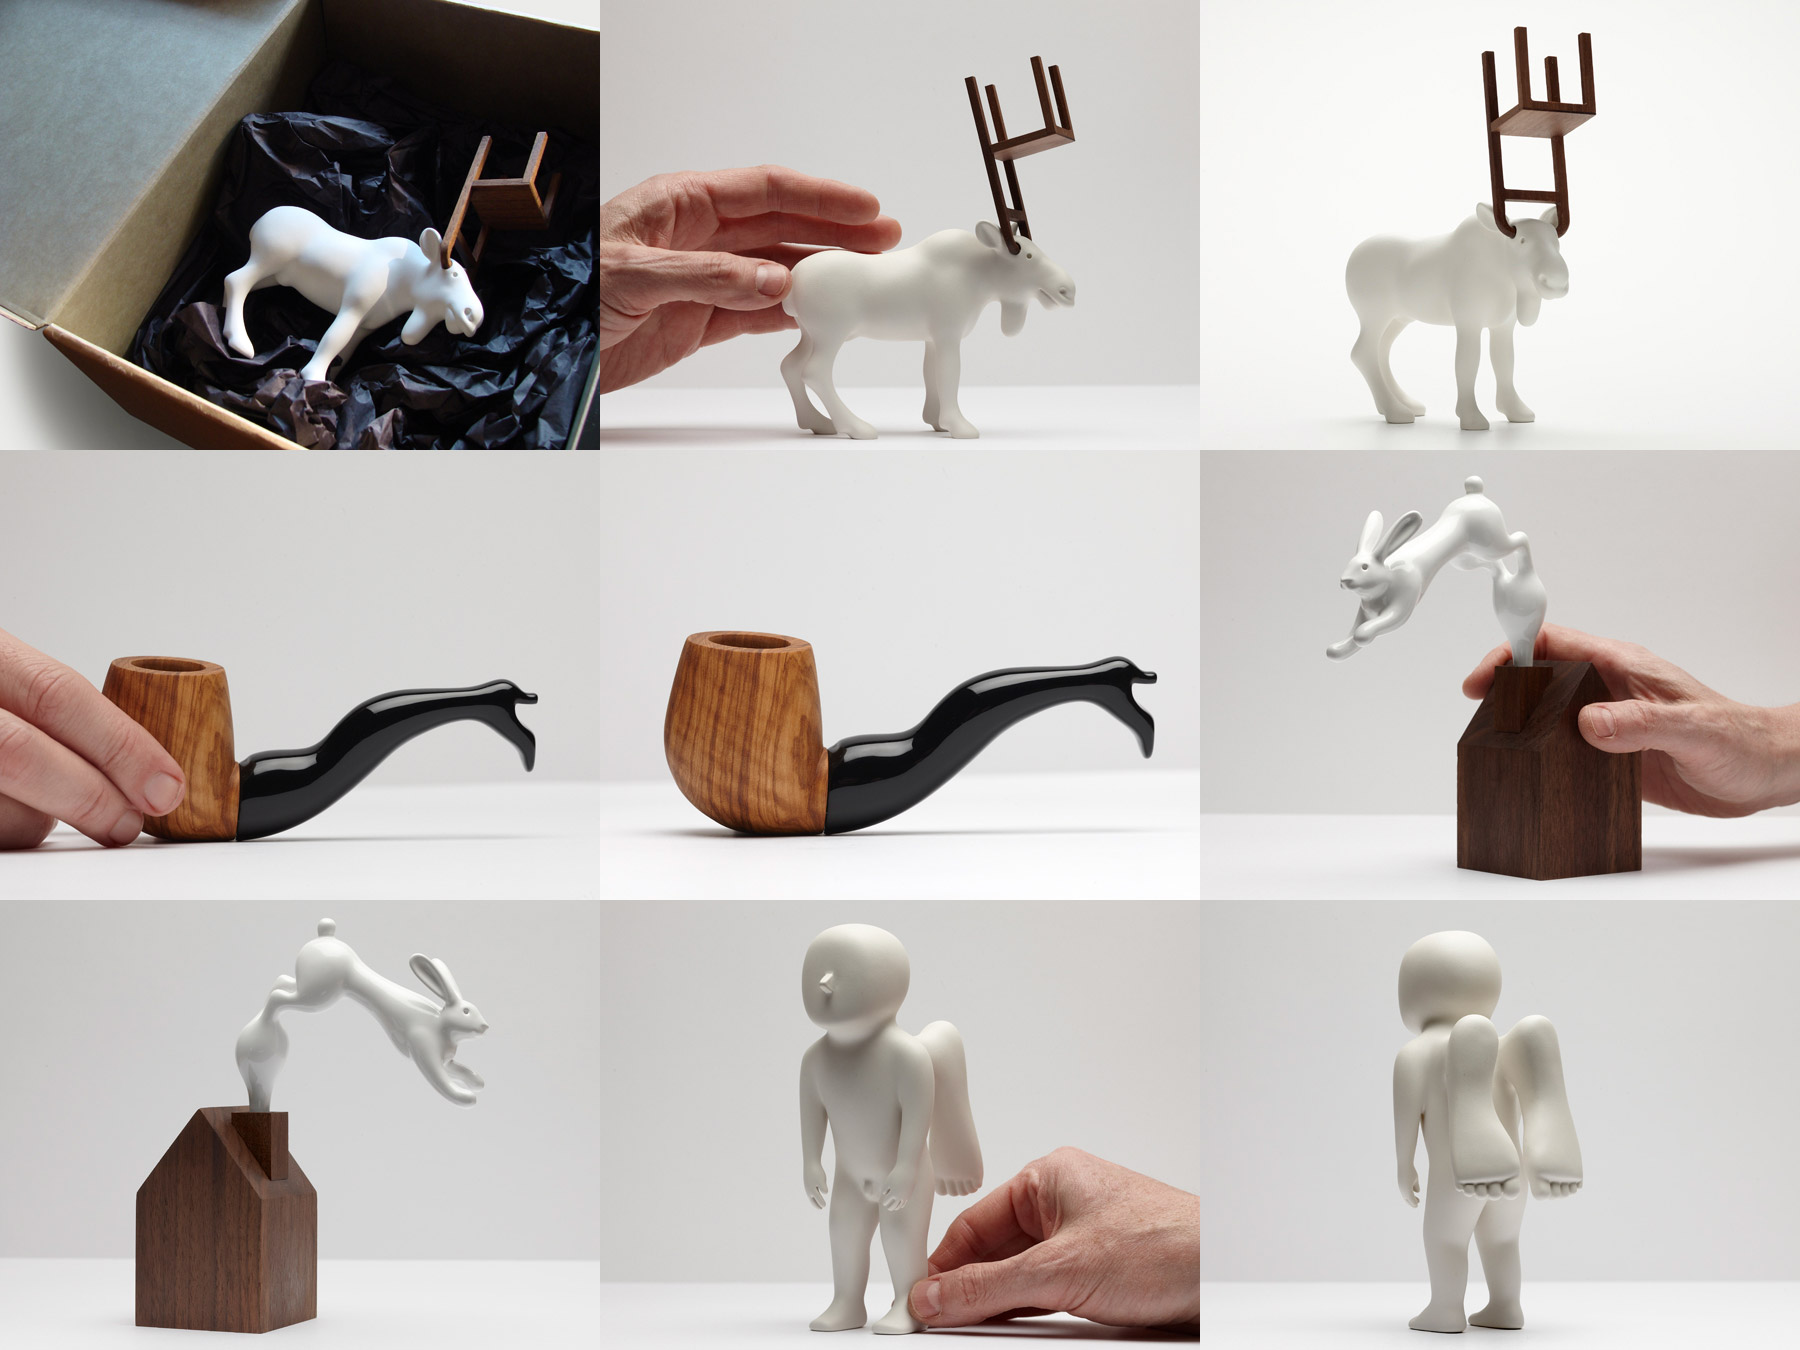 a series of odd objects: a deer with chair-shaped horns, a pipe with a woman's-leg-shaped tube, a house with rabbit-shaped smoke out of its chimney and a little man with foot-shaped wings